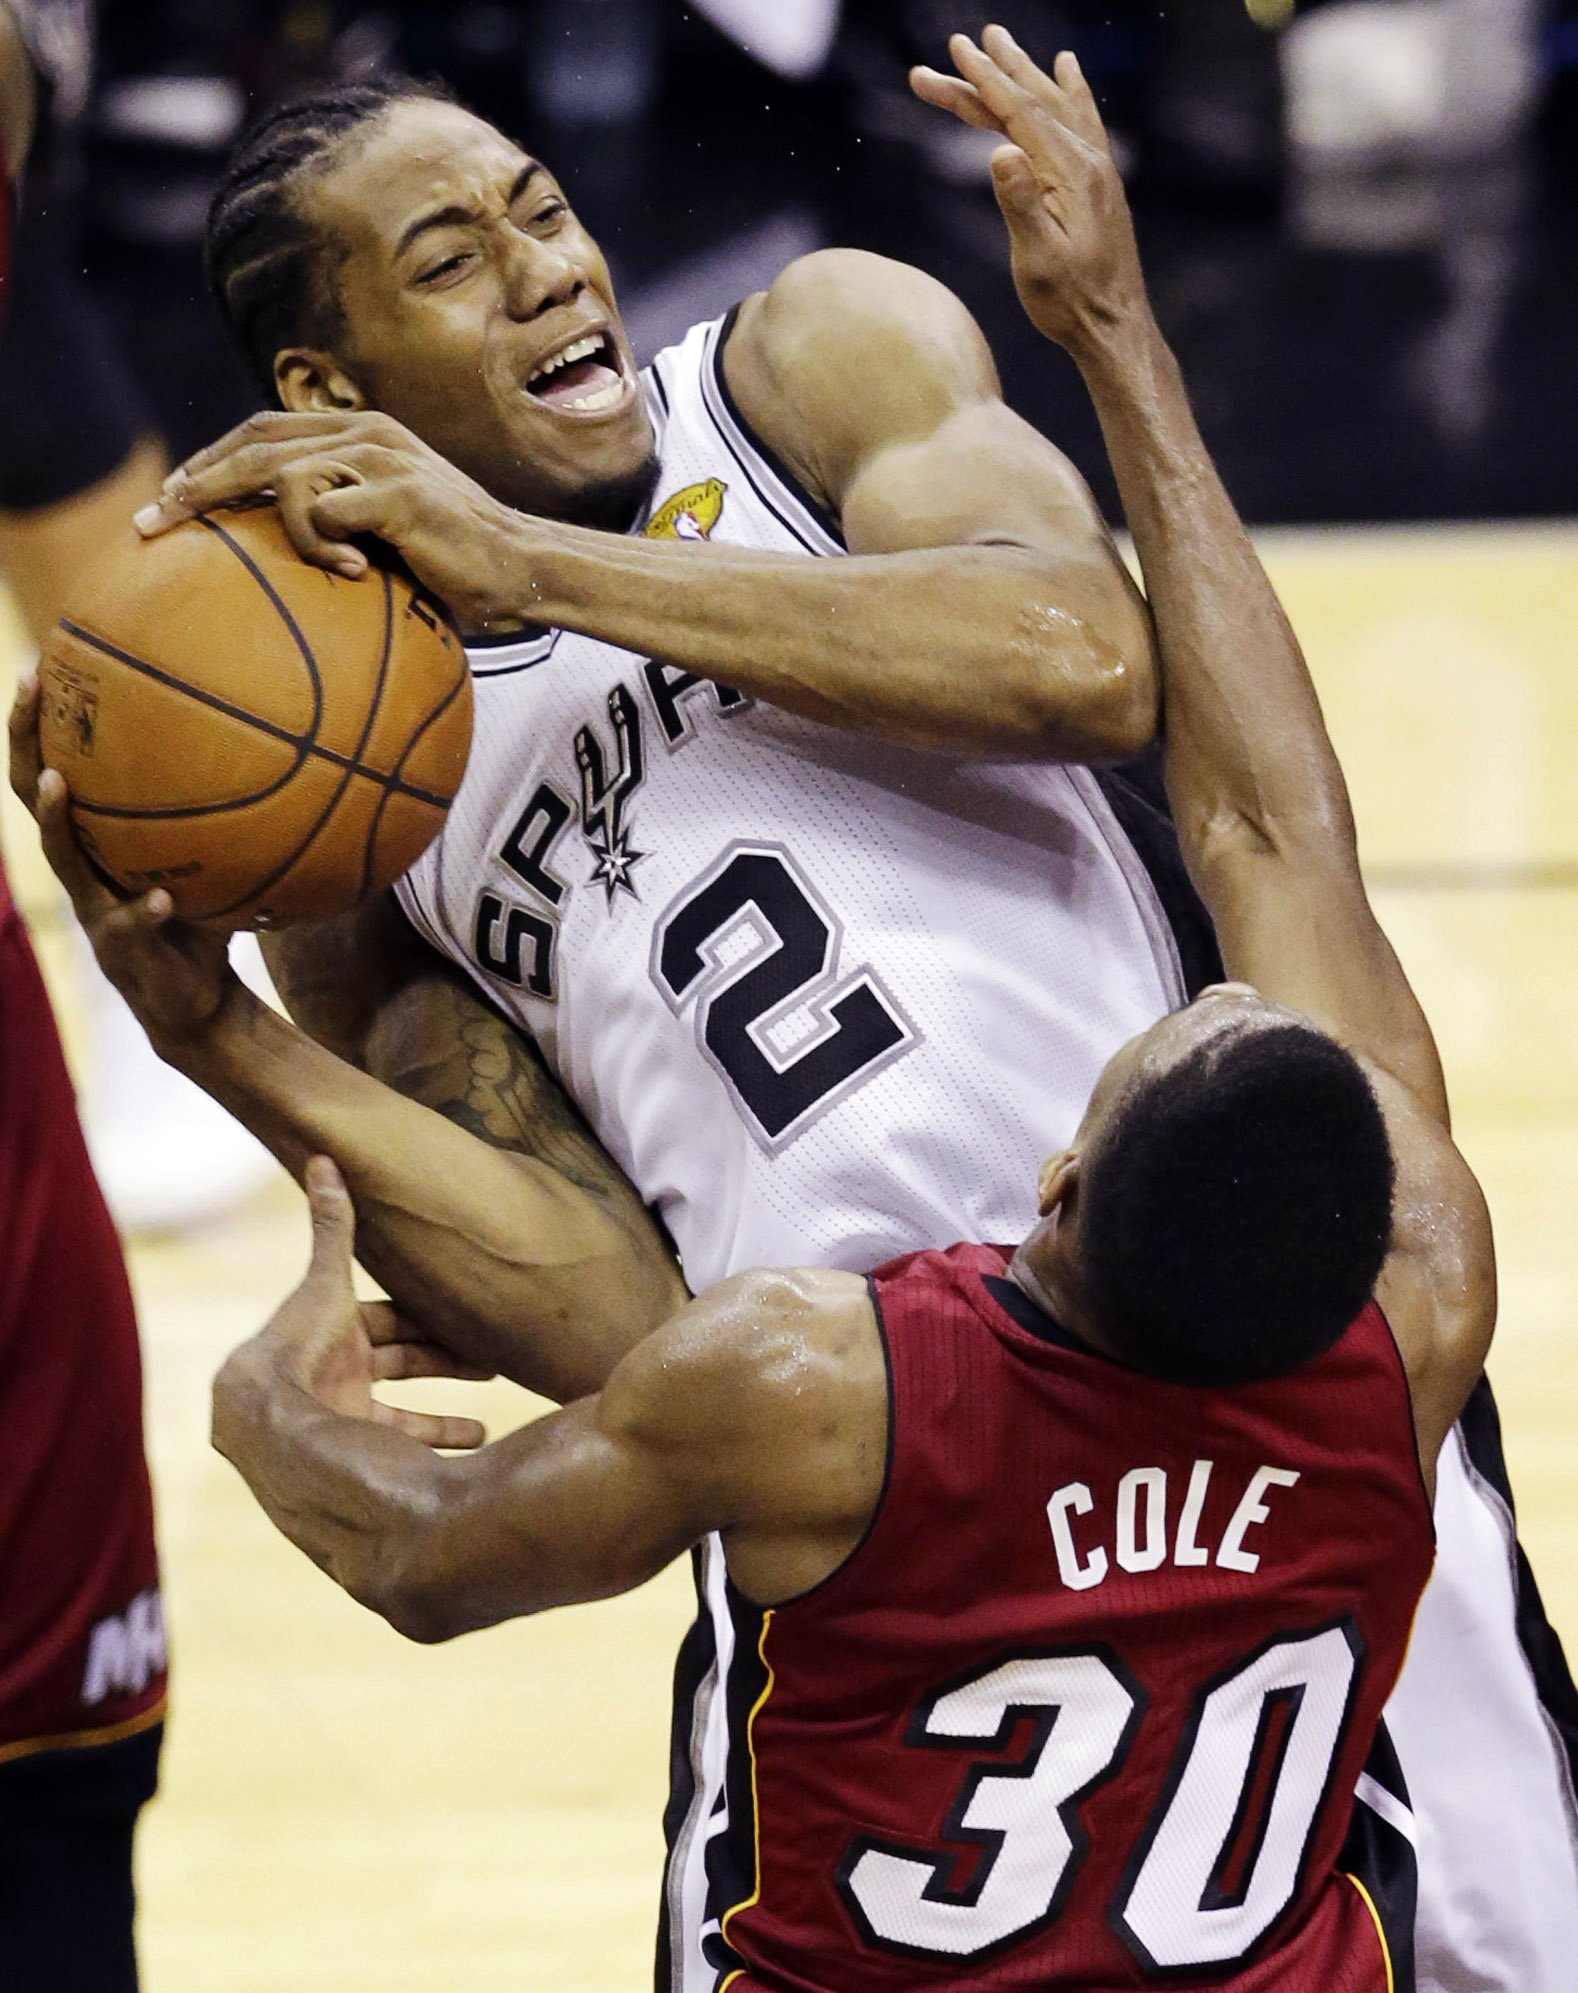 San Antonio Spurs forward Kawhi Leonard (2) is defended by Miami Heat guard Norris Cole (30) during the second half in Game 1 of the NBA basketball finals  in San Antonio on June 5, 2014.